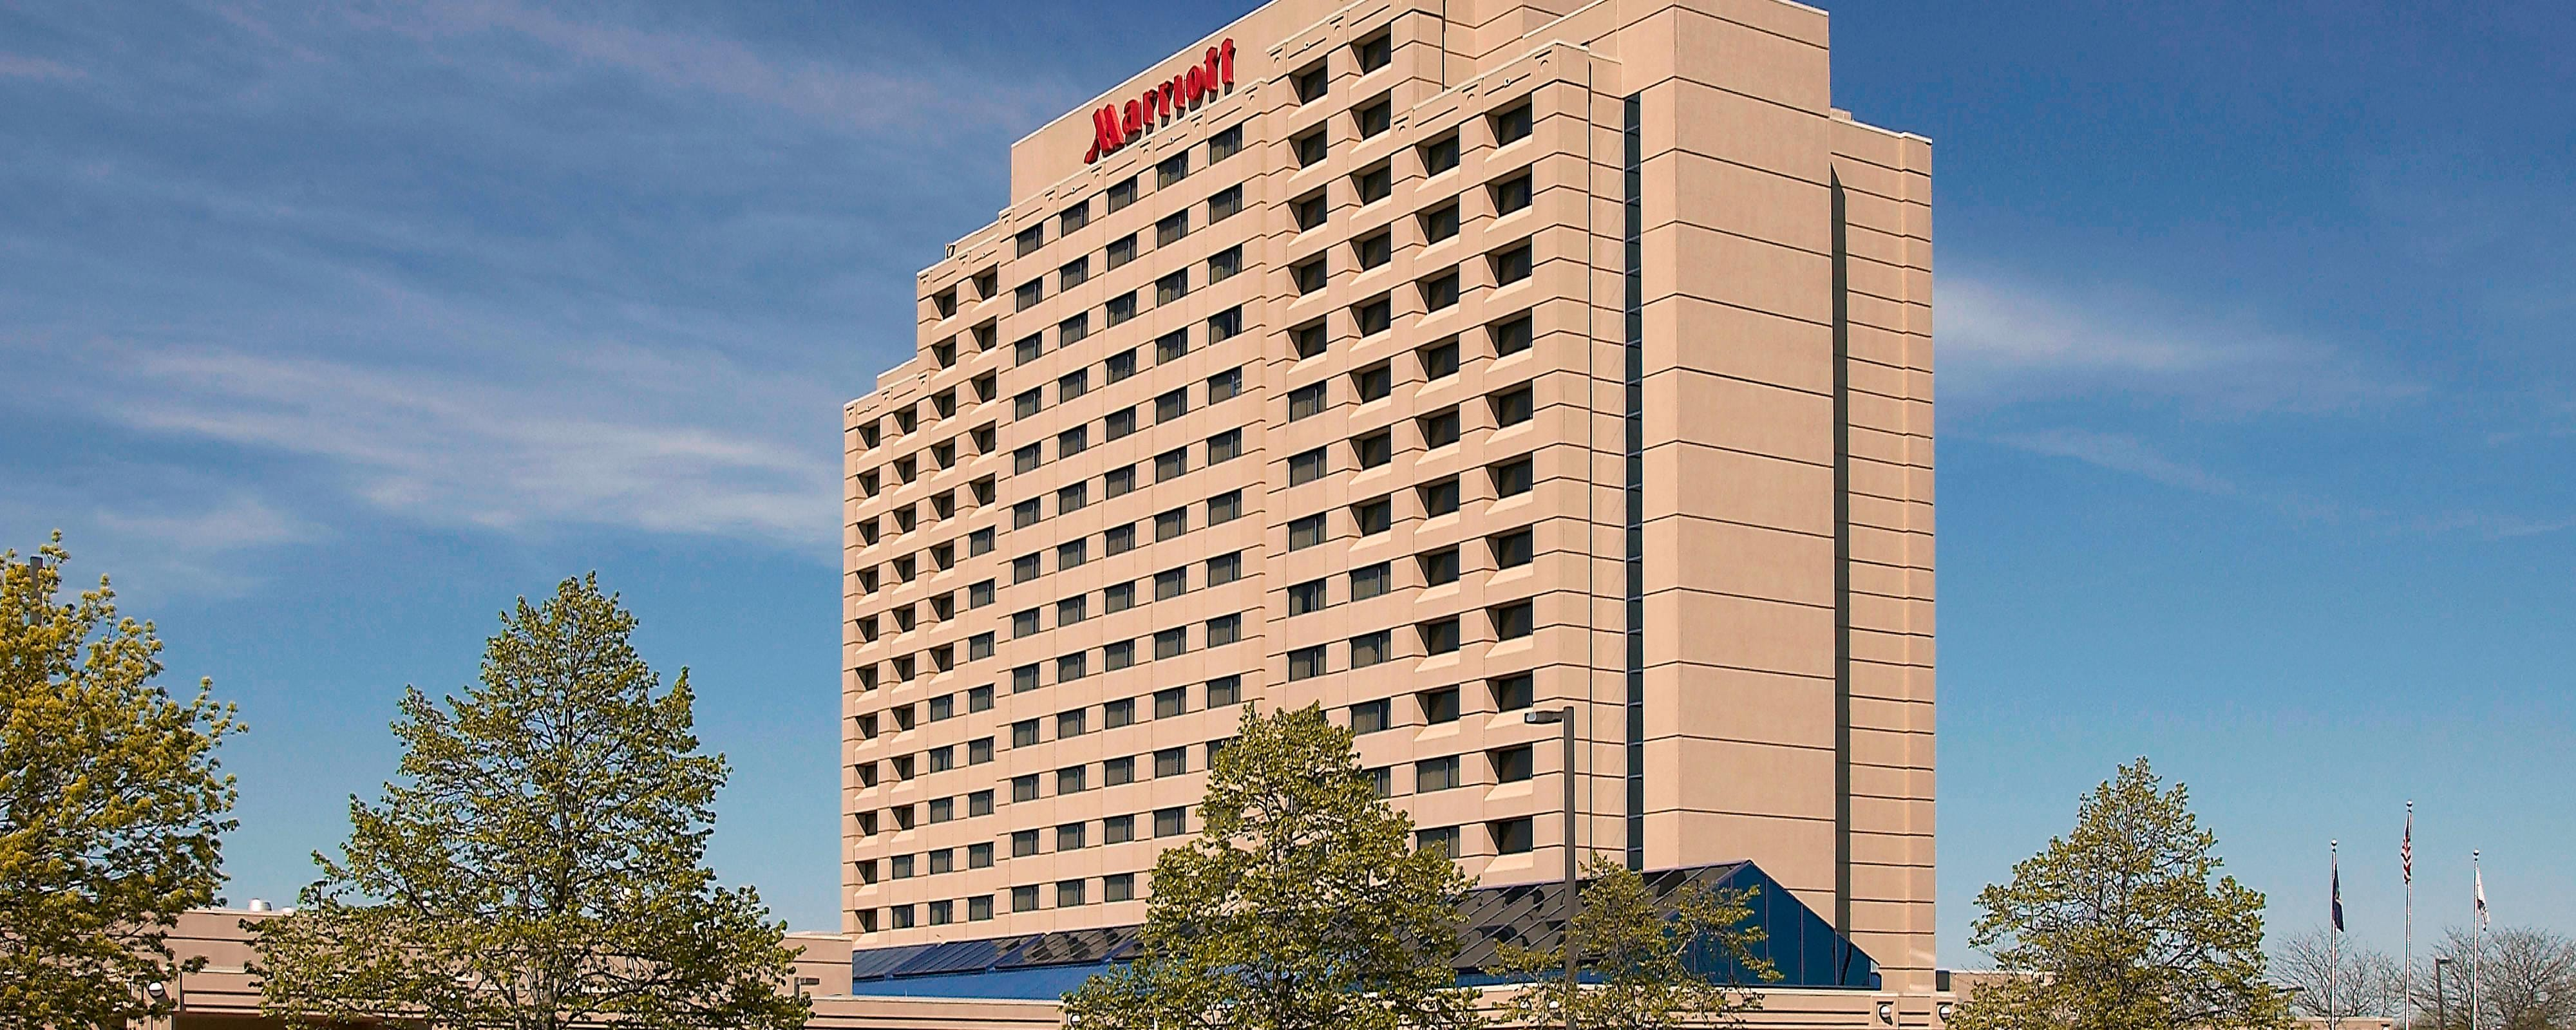 Hotel in Troy, MI | Detroit Marriott Troy